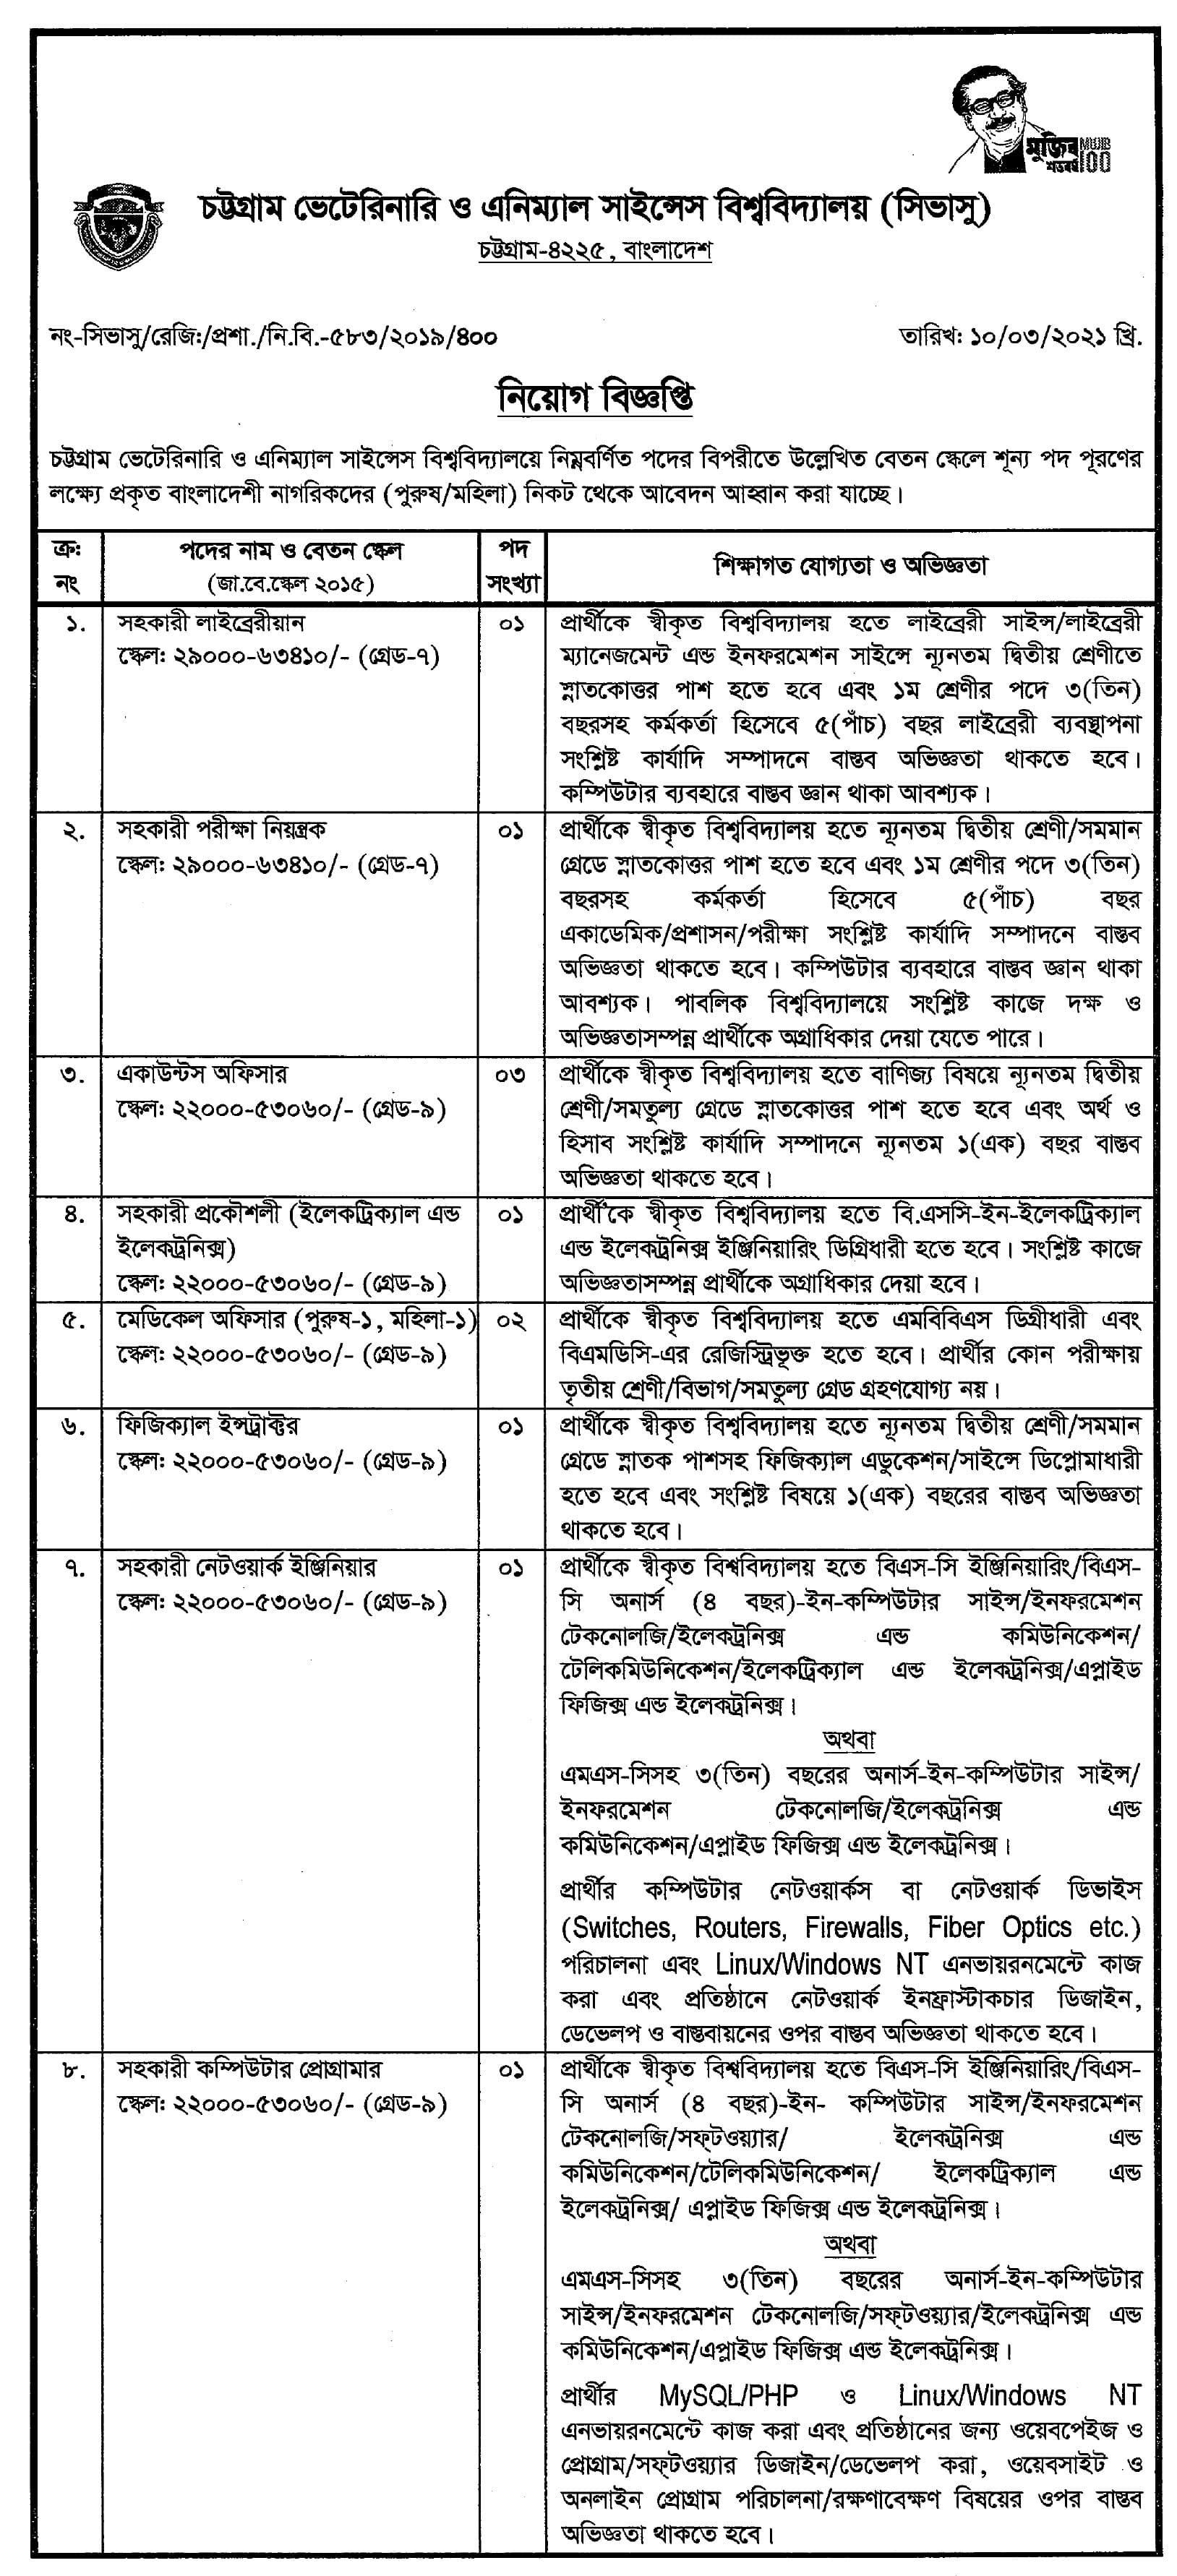 Chattogram Veterinary and Animal Sciences University job Circular